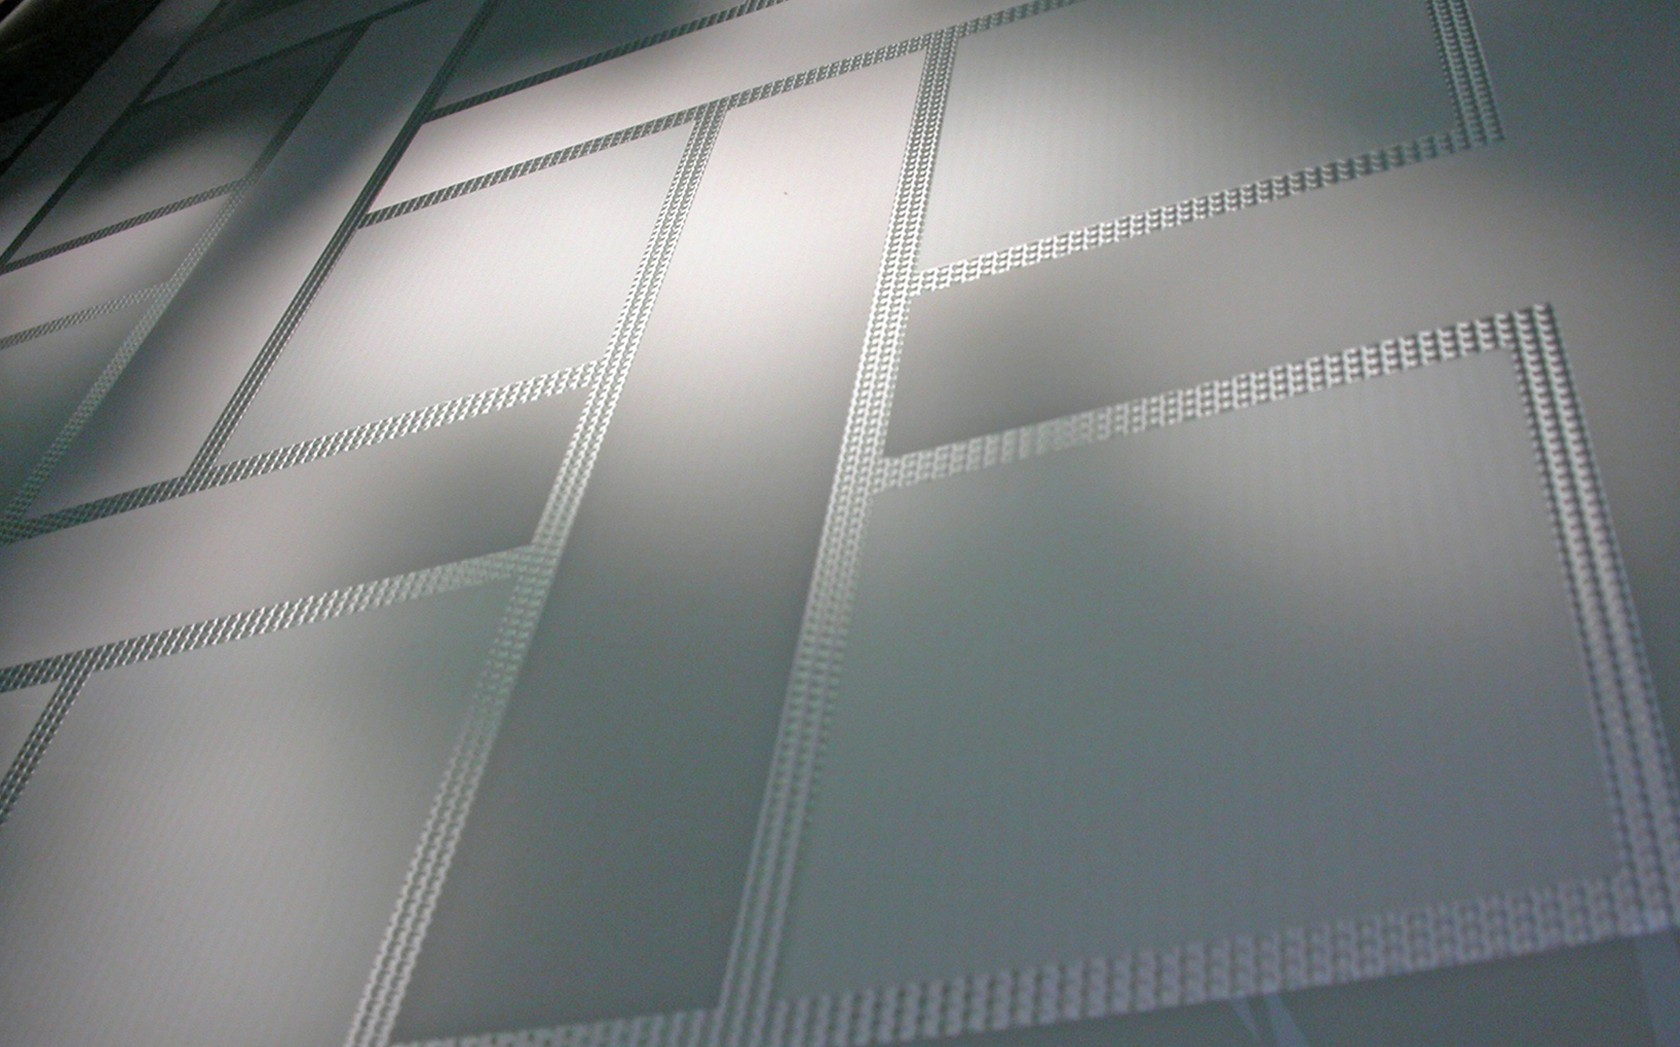 Monochrome designer glass screens